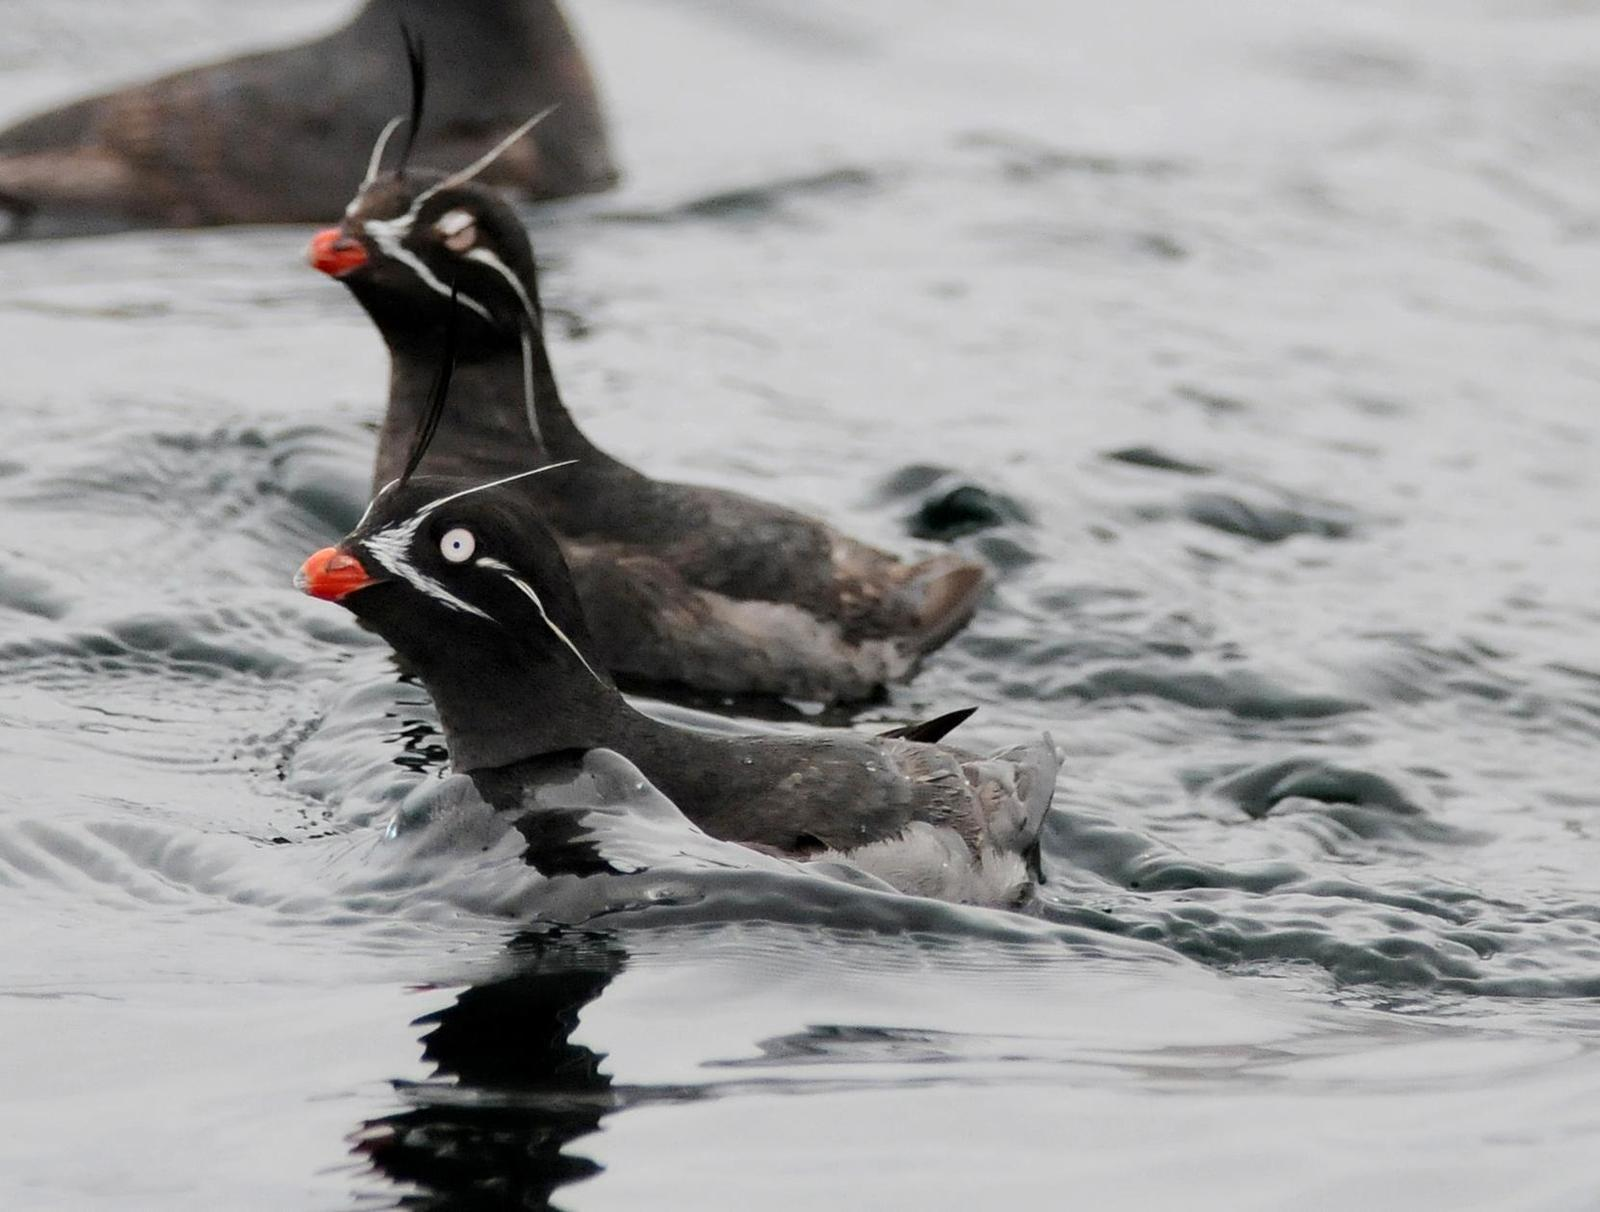 Whiskered Auklet Photo by Steven Mlodinow